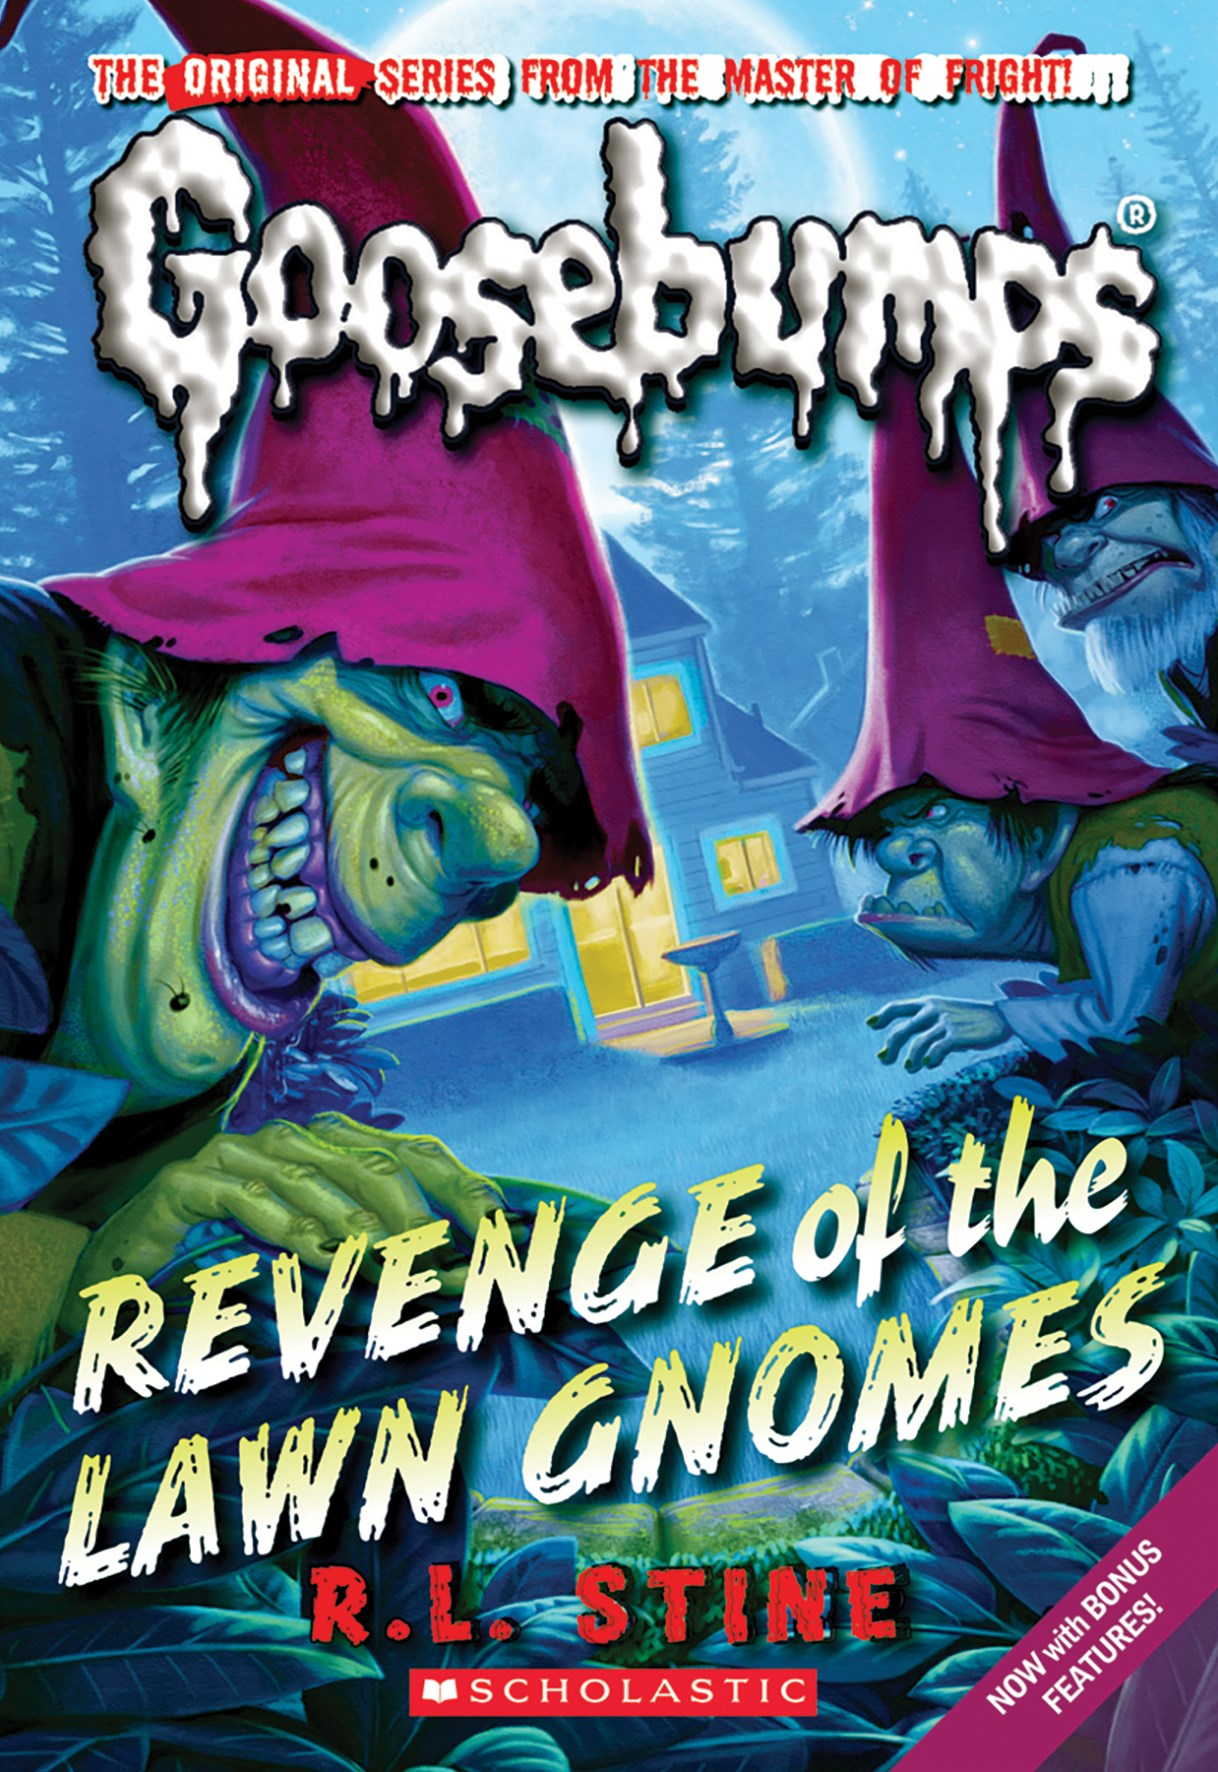 Revenge of the Lawn Gnomes (Goosebumps Classic Book 19)